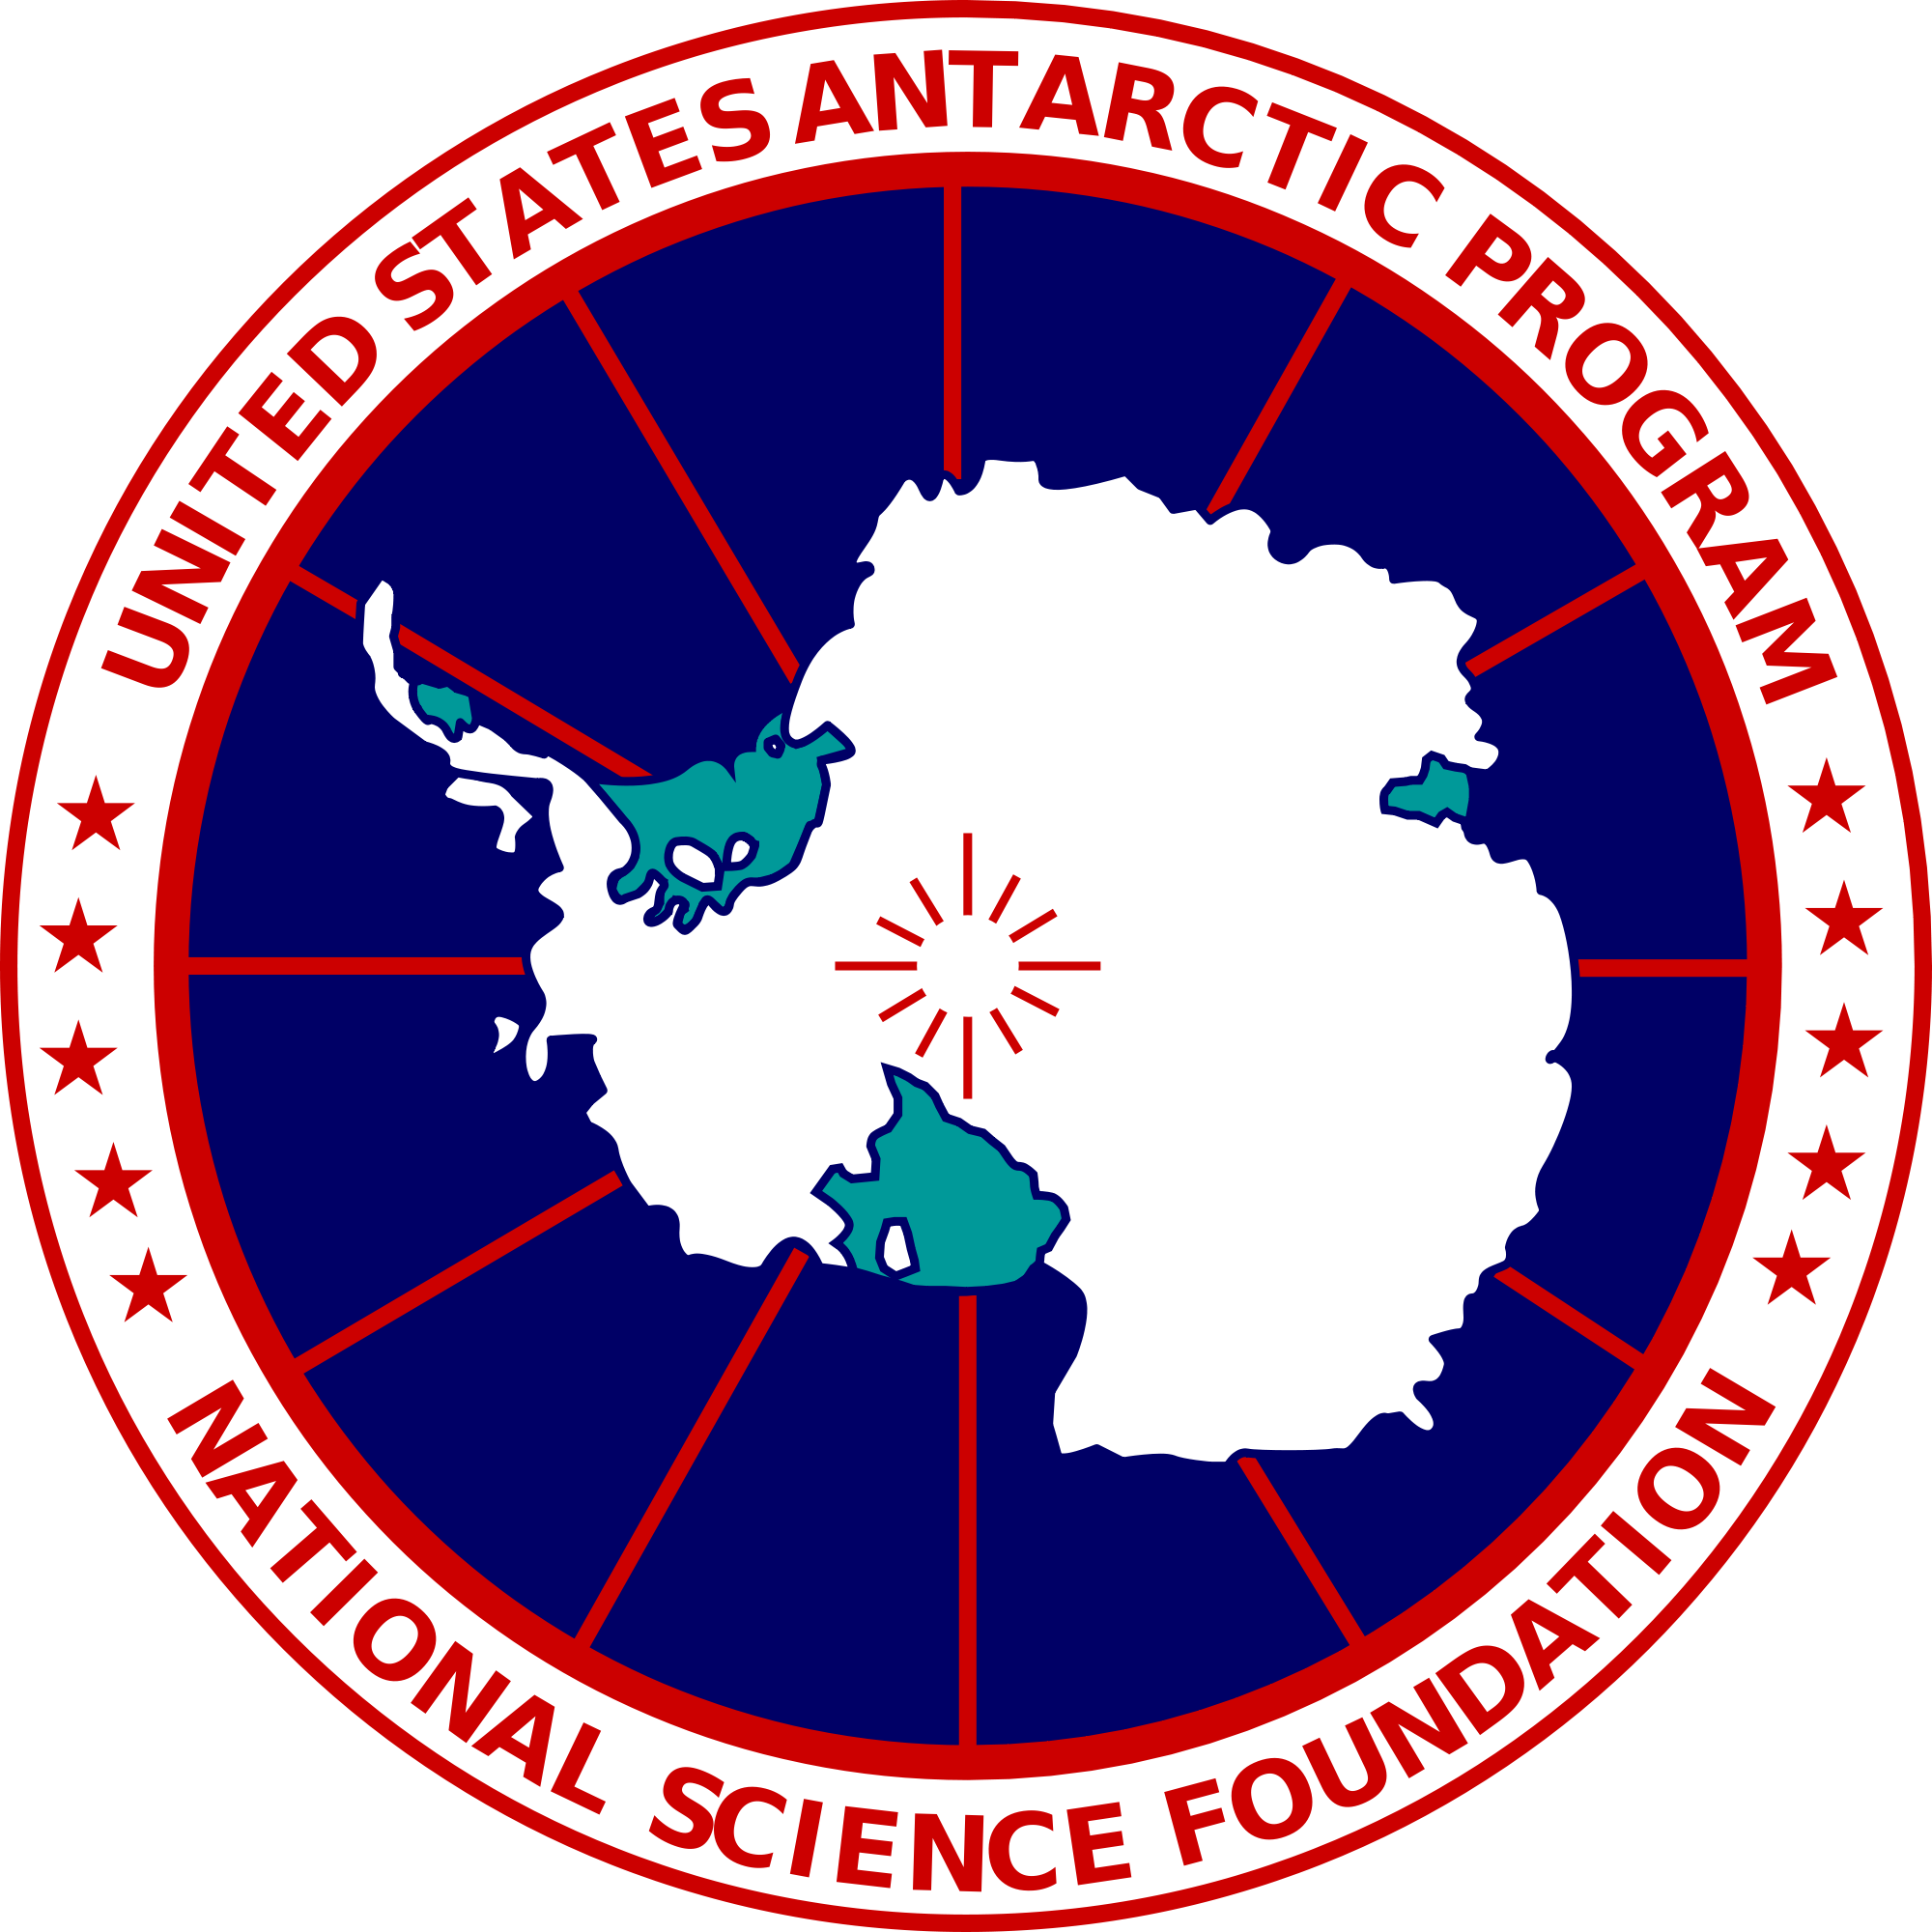 png free library Svg program. File usantarcticprogram logo wikimedia.